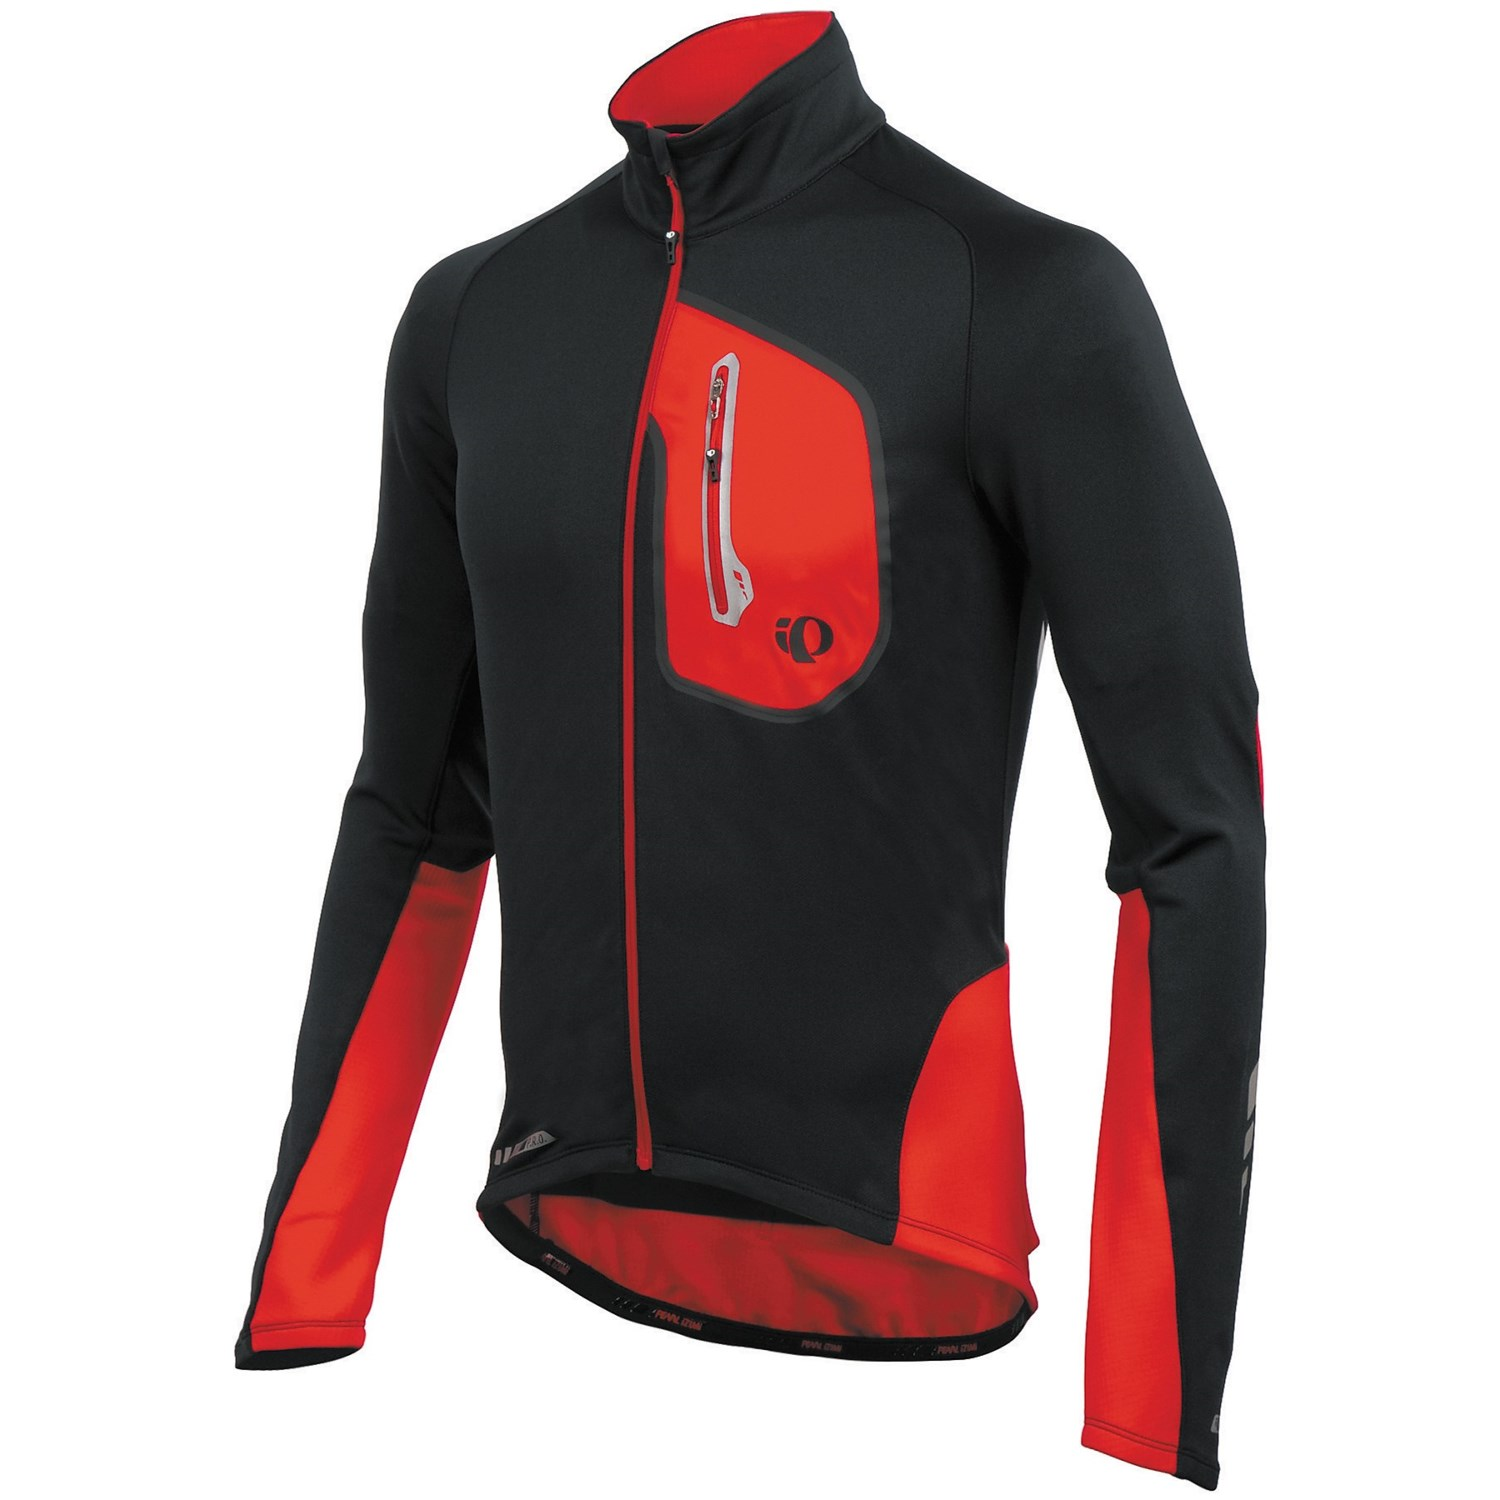 Pearl izumi p r o thermal cycling jersey for men 6141k for Pearl izumi cycling shirt